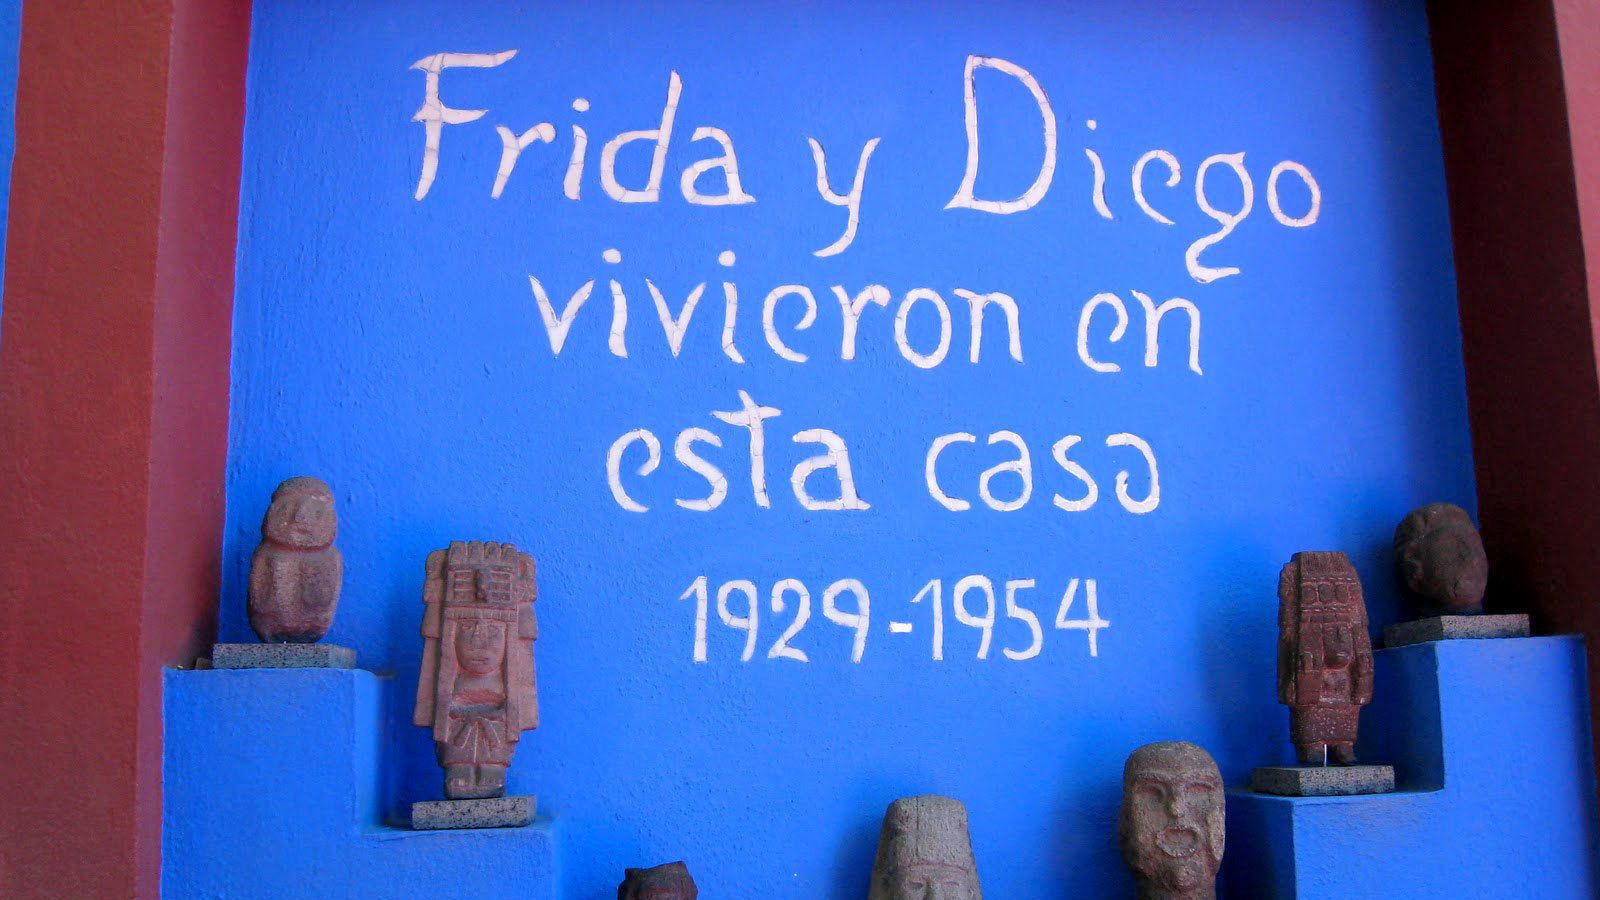 Inscription on a wall at the Frida Kahlo Museum